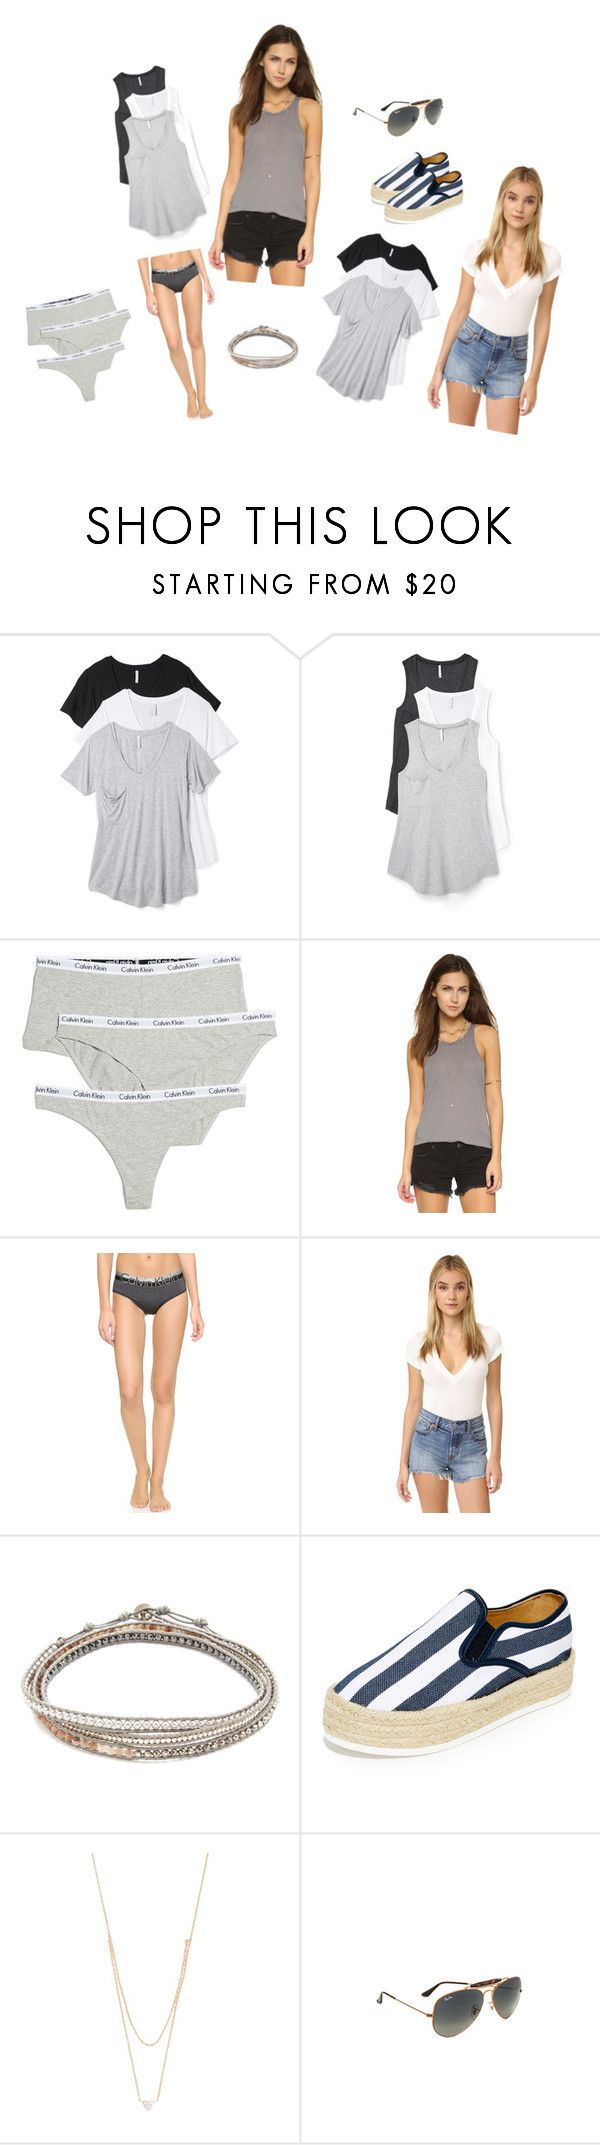 """""""Combo Pack Sale..##"""" by yagna ❤ liked on Polyvore featuring Z Supply, Calvin Klein Underwear, Free People, Chan Luu, Matt Bernson, Kismet by Milka and Ray-Ban"""